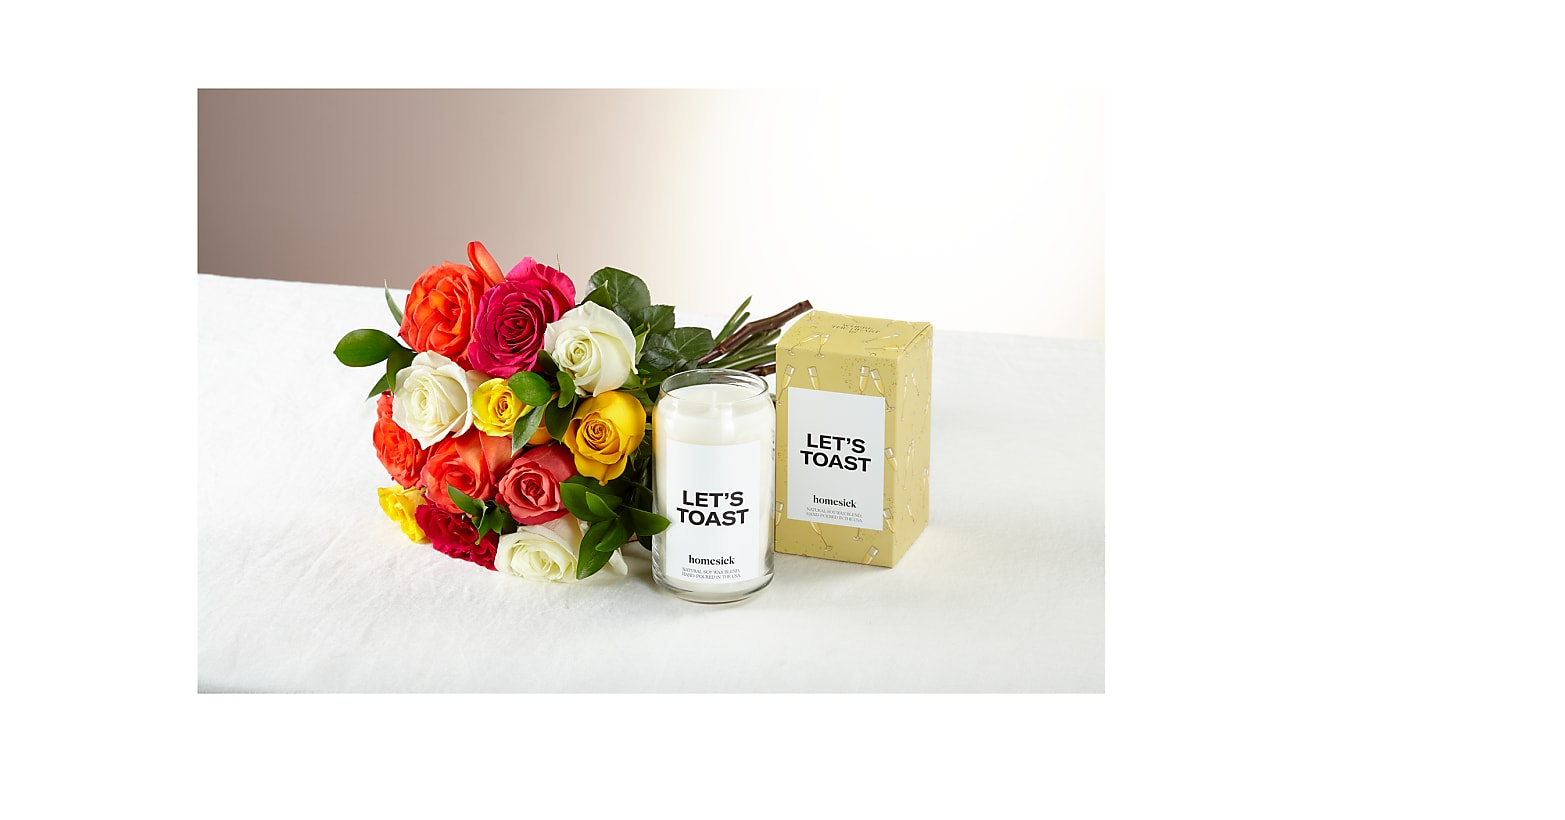 Mixed Roses & Let's Toast Homesick® Candle - Image 1 Of 2